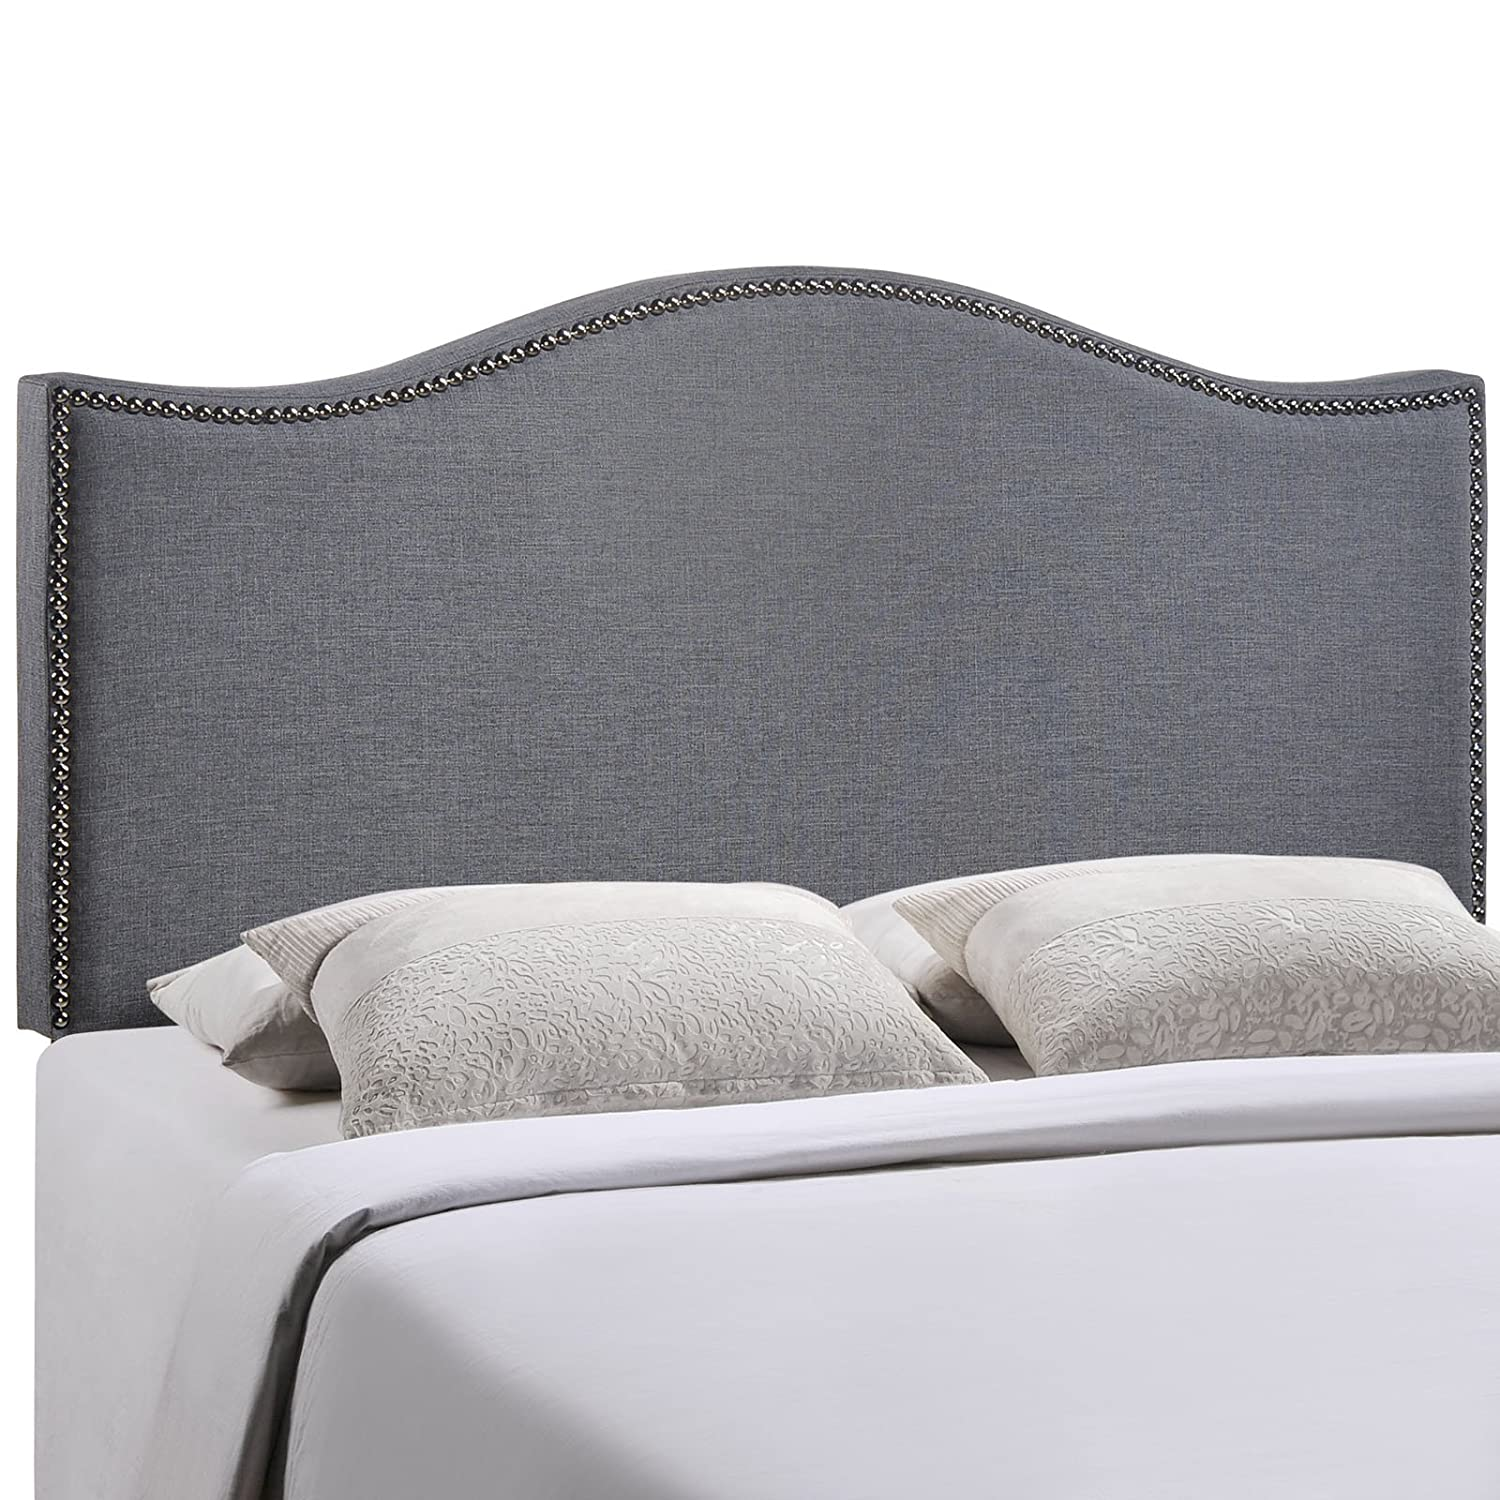 Modway Curl Queen Nailhead Upholstered Linen Headboard in Smoke